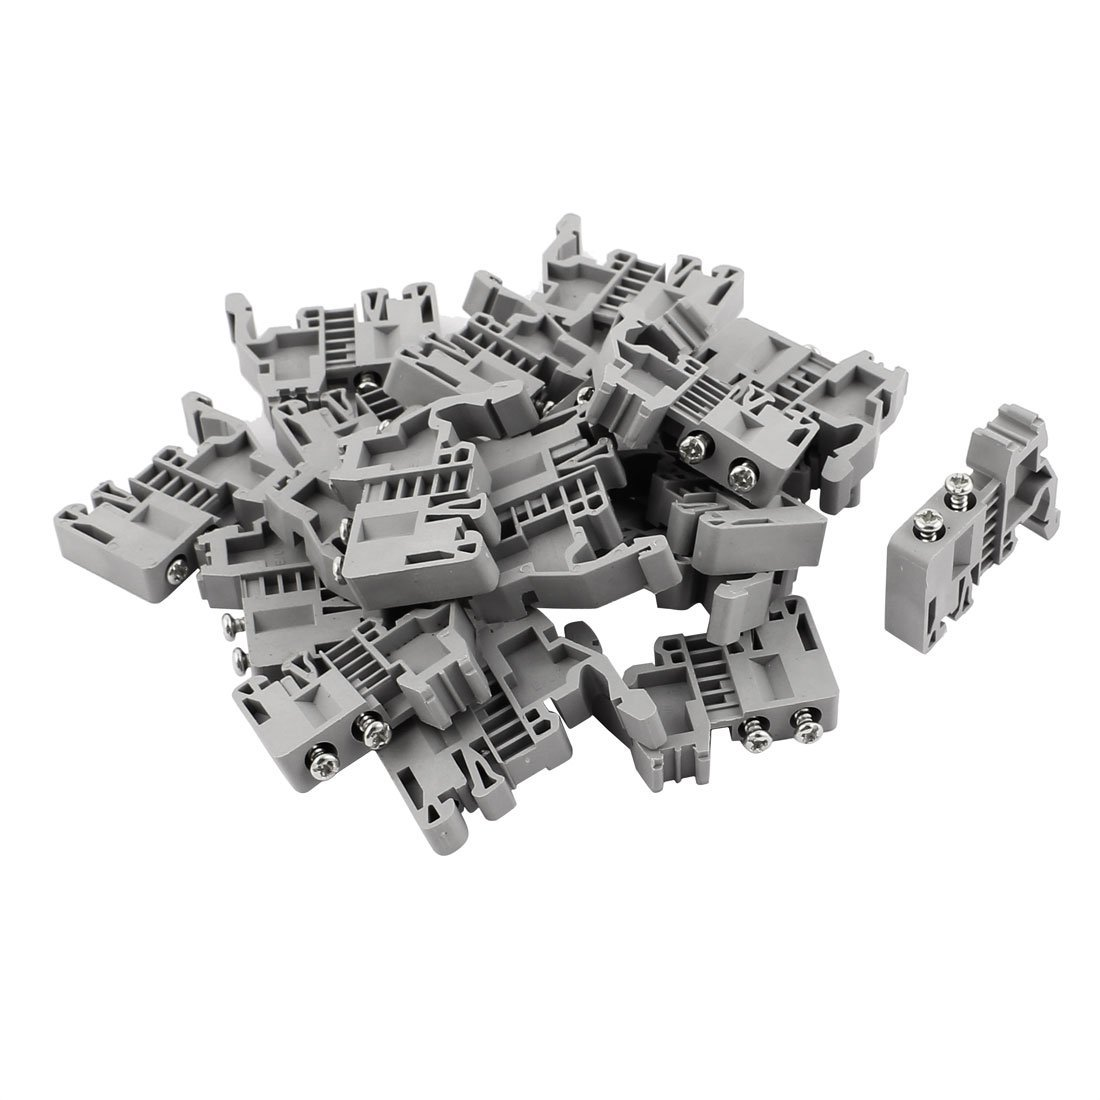 uxcell 20 Pcs E-UK 35mm DIN Rail End Screw Clamp Terminal Fixed Block Gray